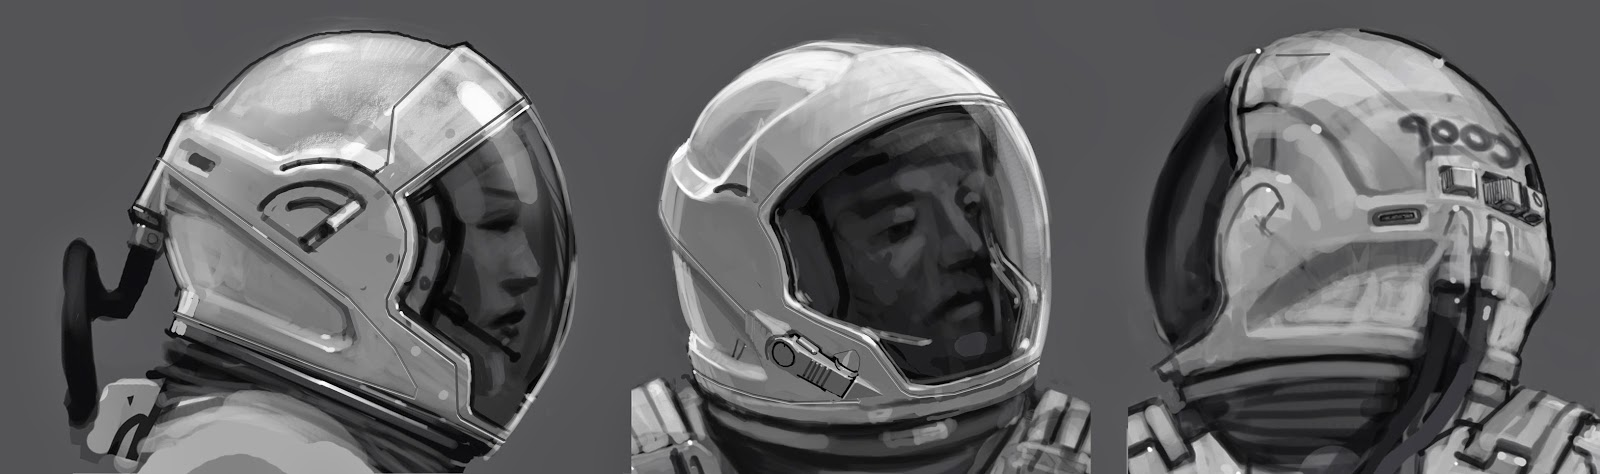 Concept Space Suit Helmet - Pics about space